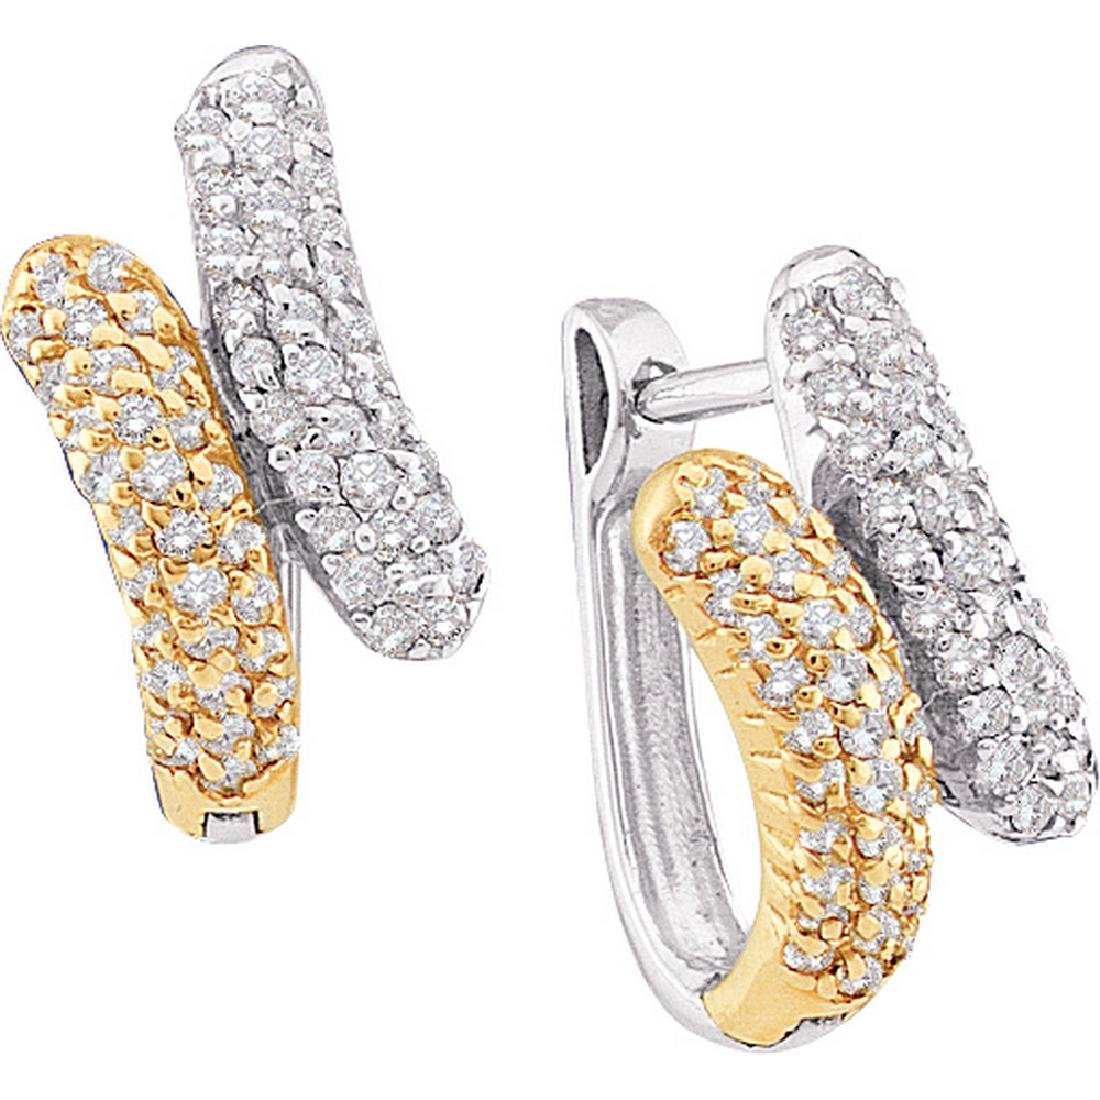 0.50 CTW Diamond Bypass Huggie Hoop Earrings 14KT